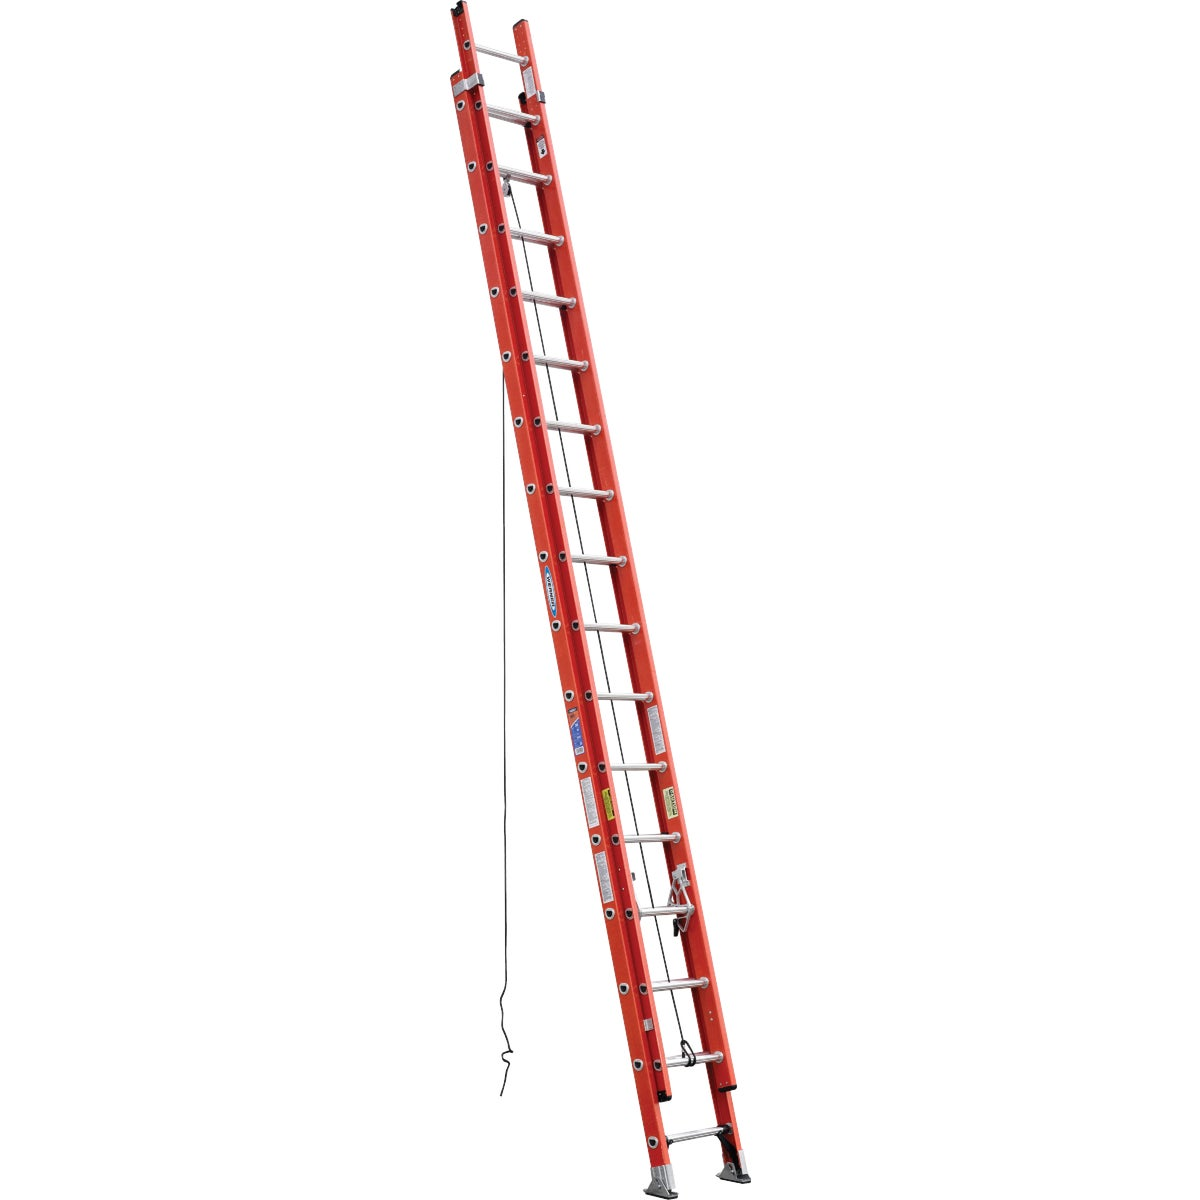 T-1A 32' FBGL EXT LADDER